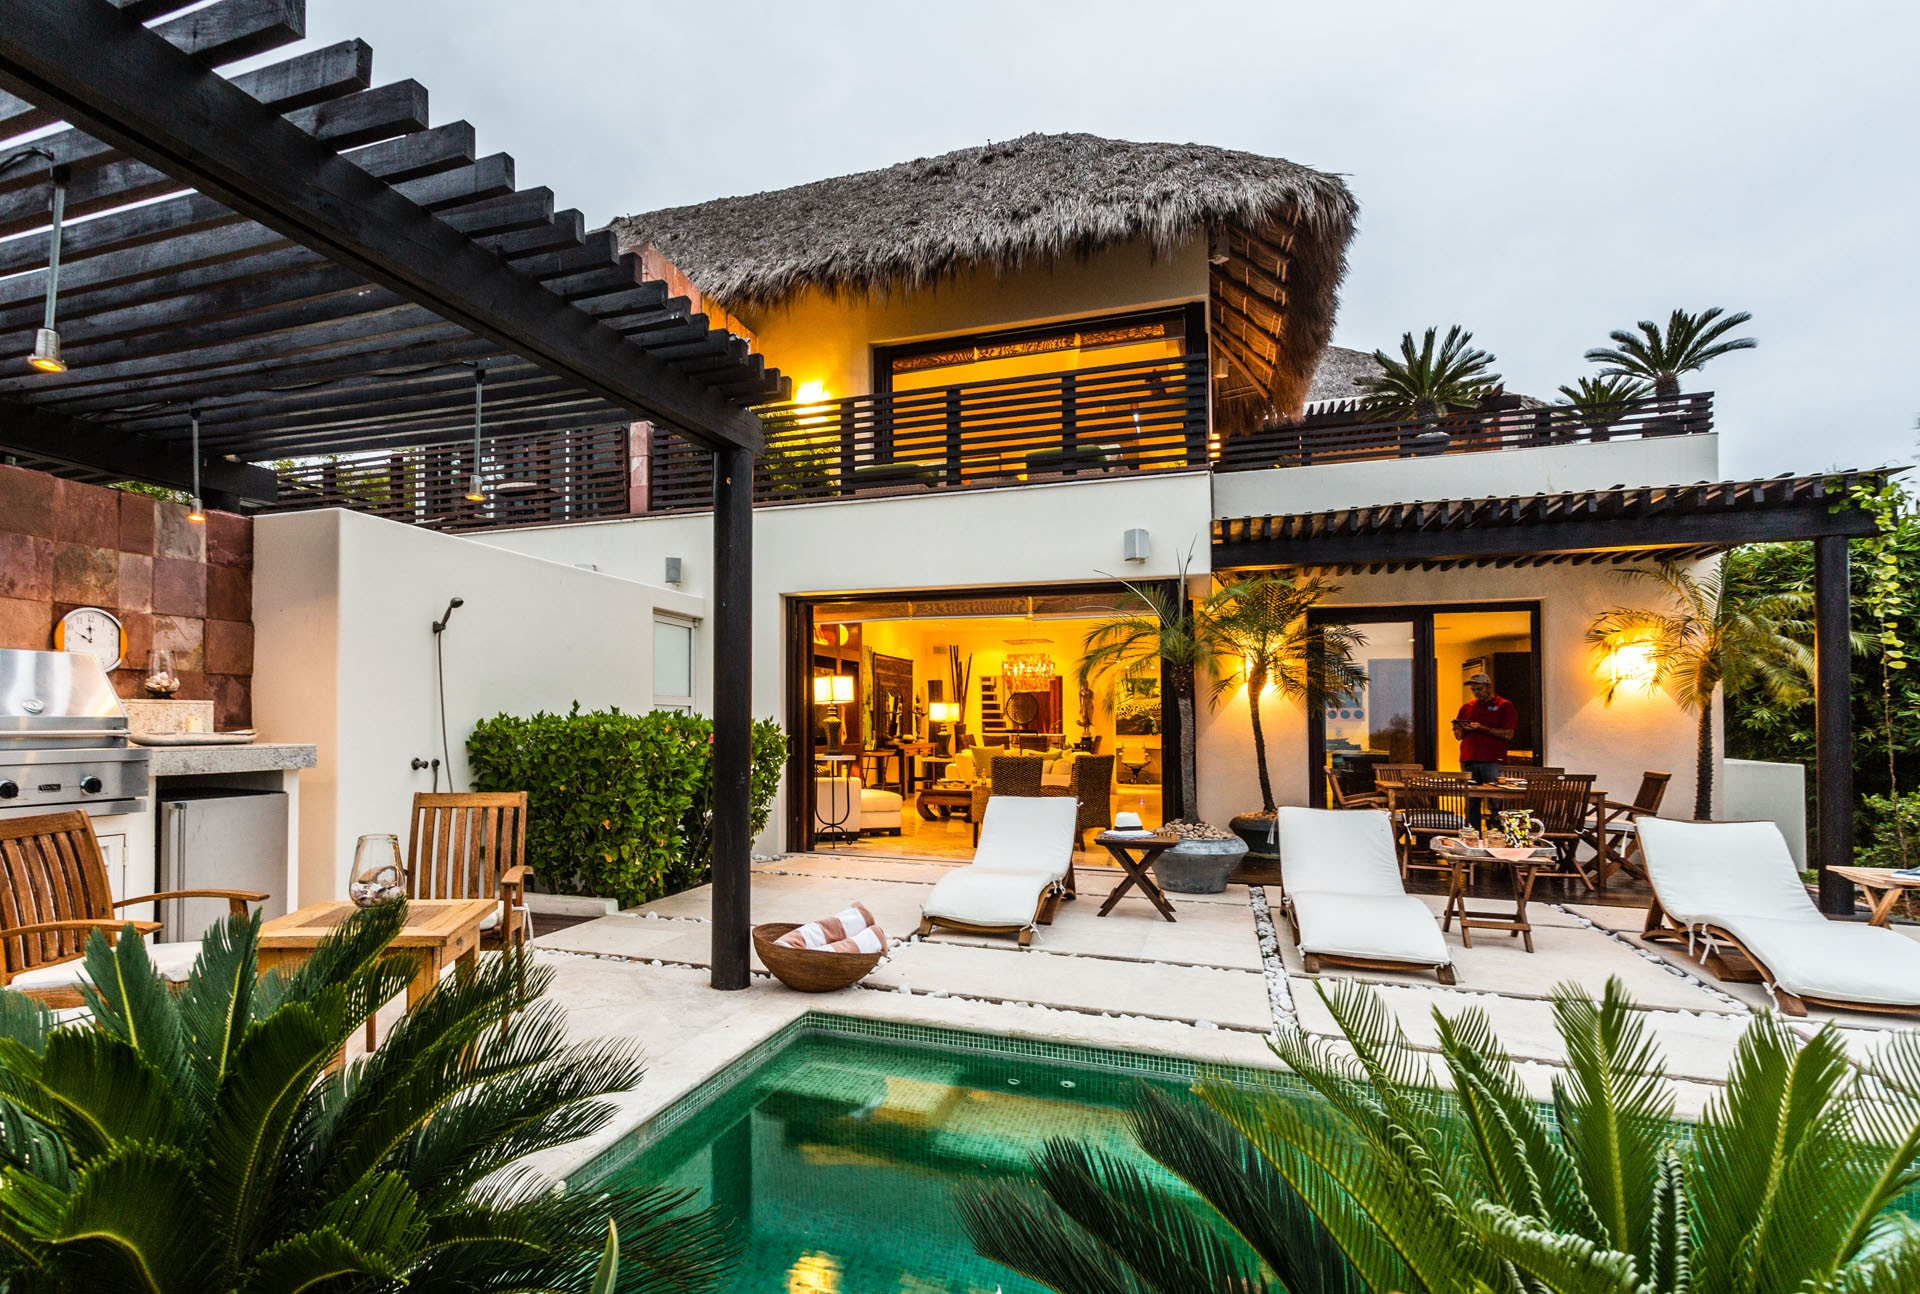 Property Image 2 - Elegant Casita with Private Courtyard and Pool